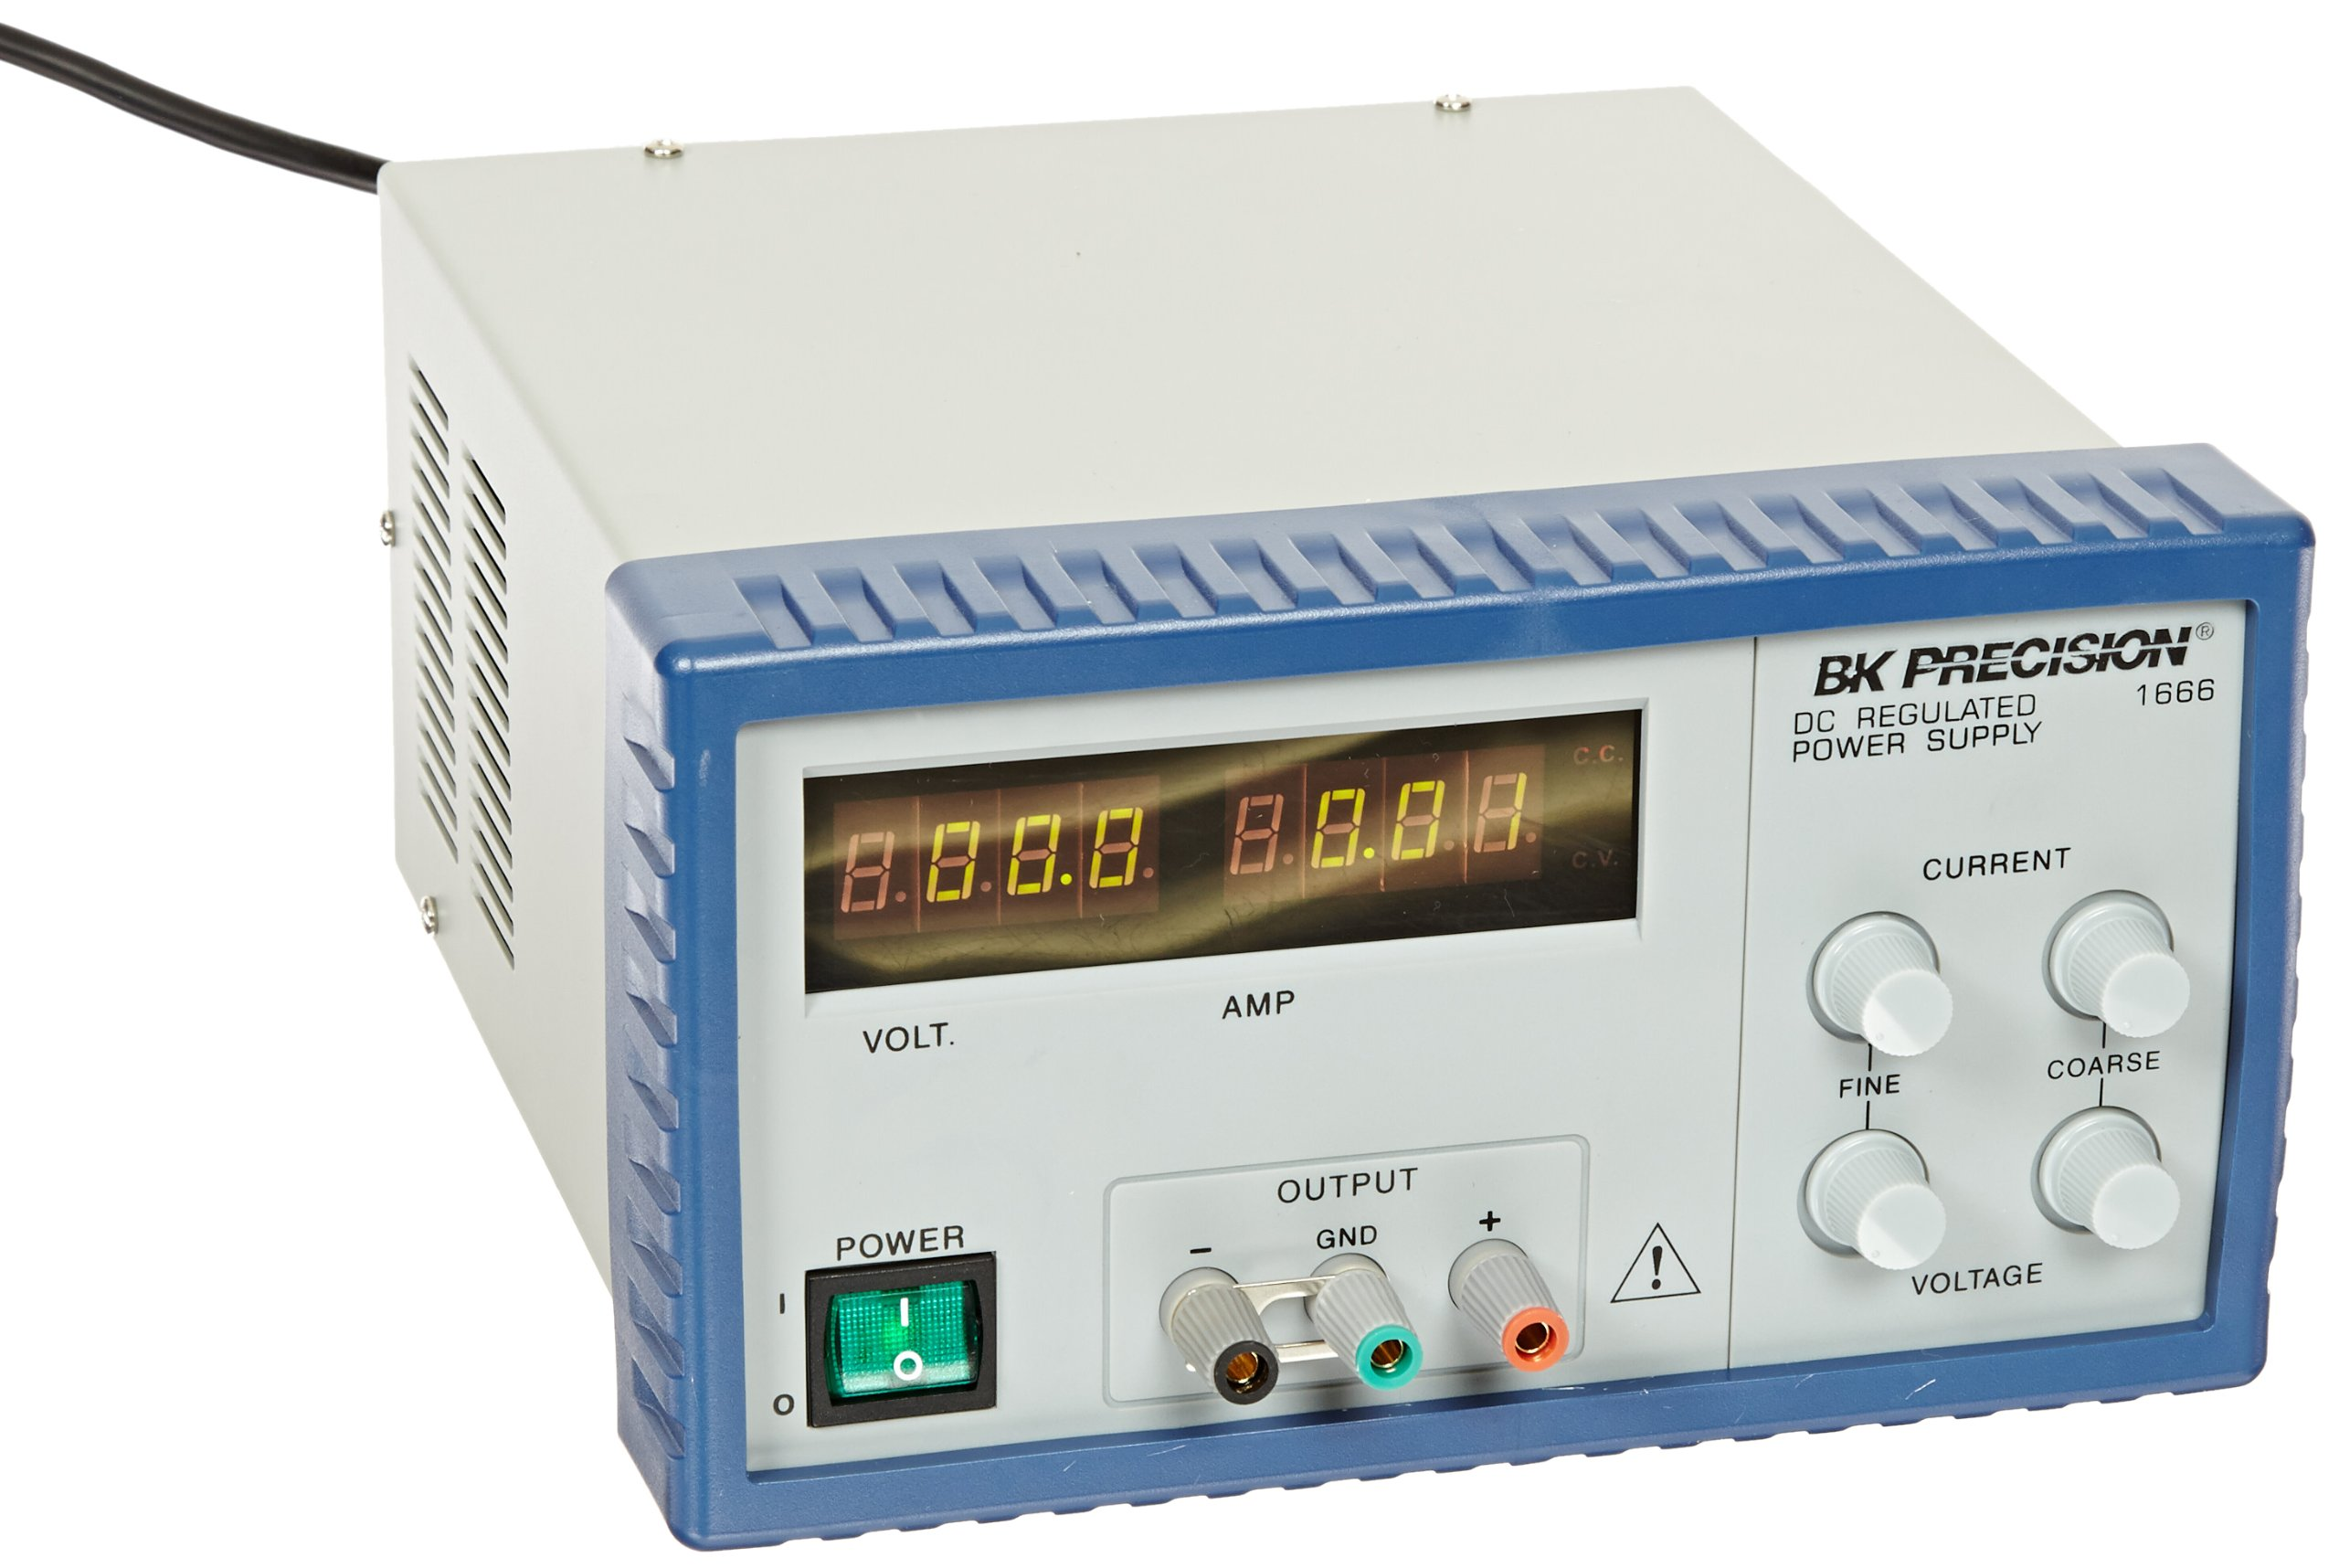 B&K Precision 1666 Bench Switching DC Power Supply Series, 1-40V, 5A